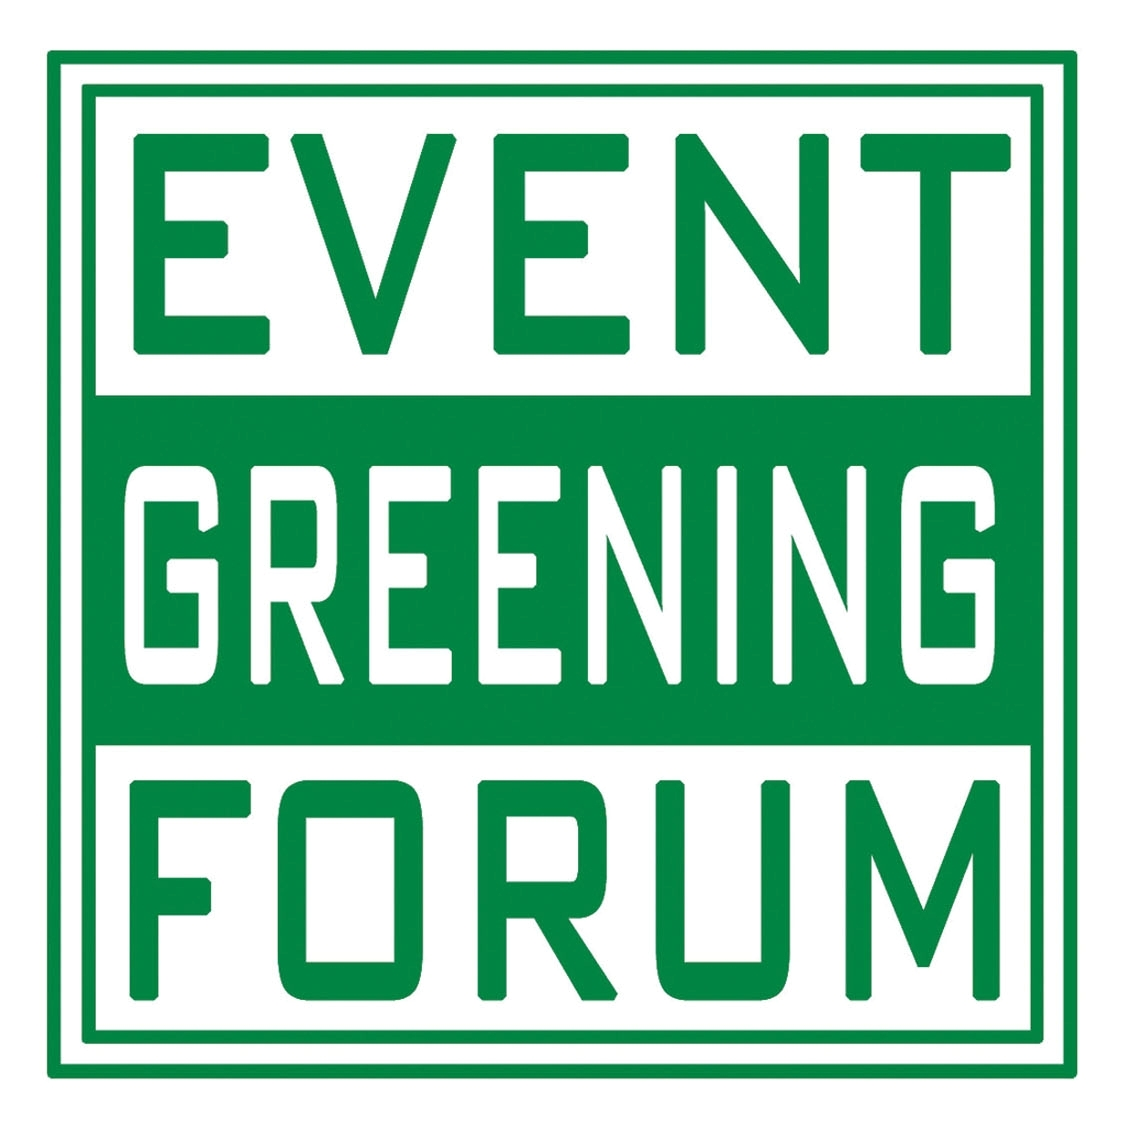 Event Greening Form